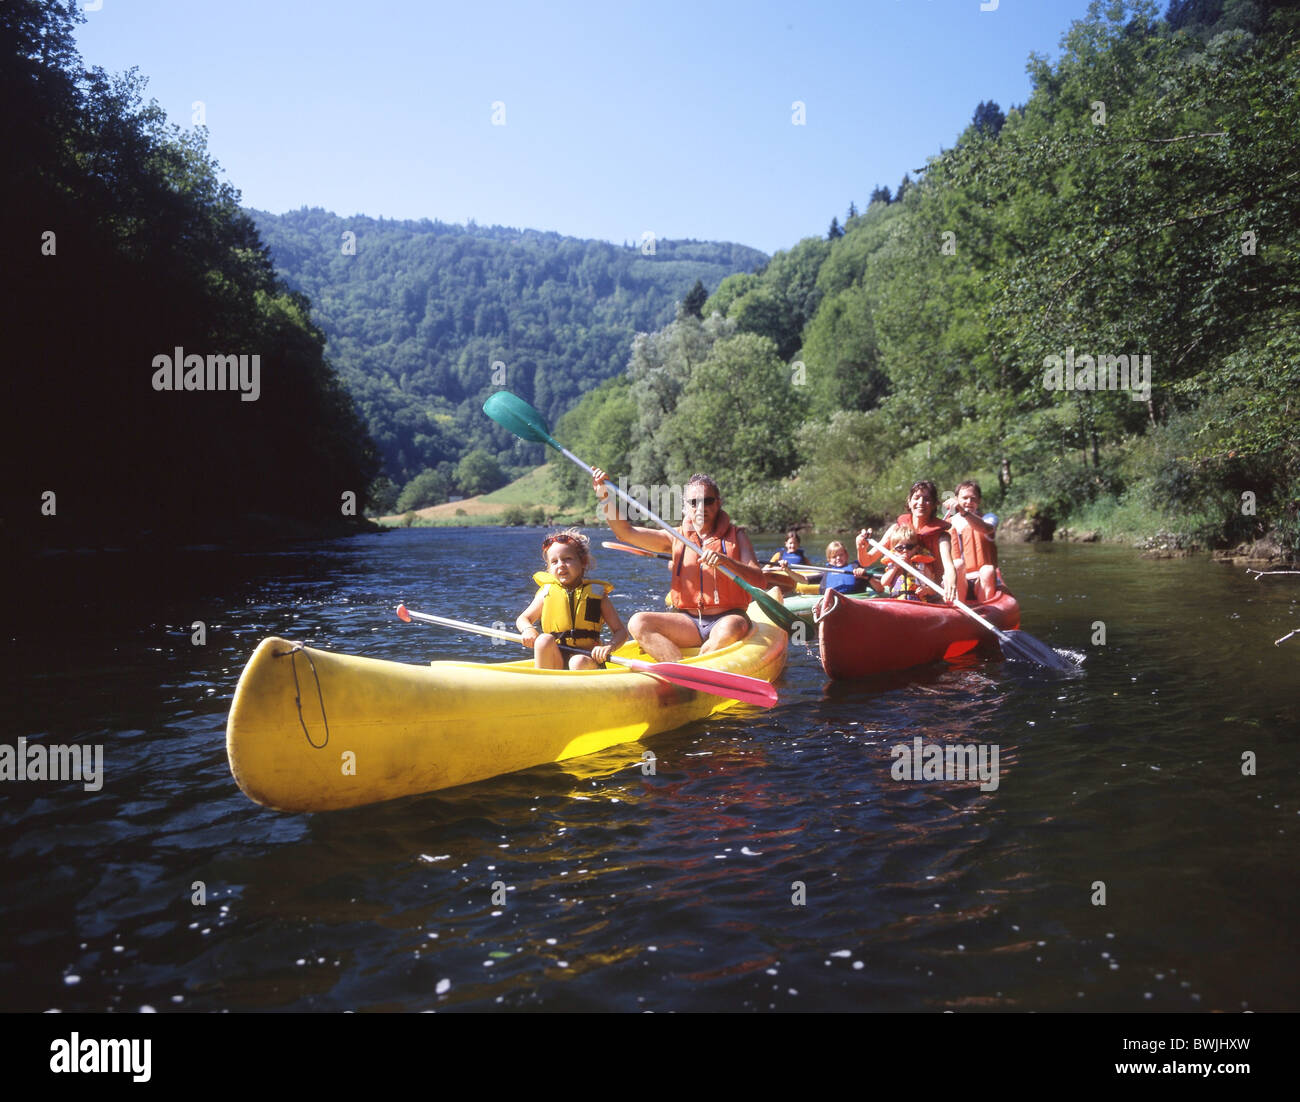 family river Doubs canoe spare time summer aquatic sports water sports to paddles Boat Canton Jura Switzerl - Stock Image